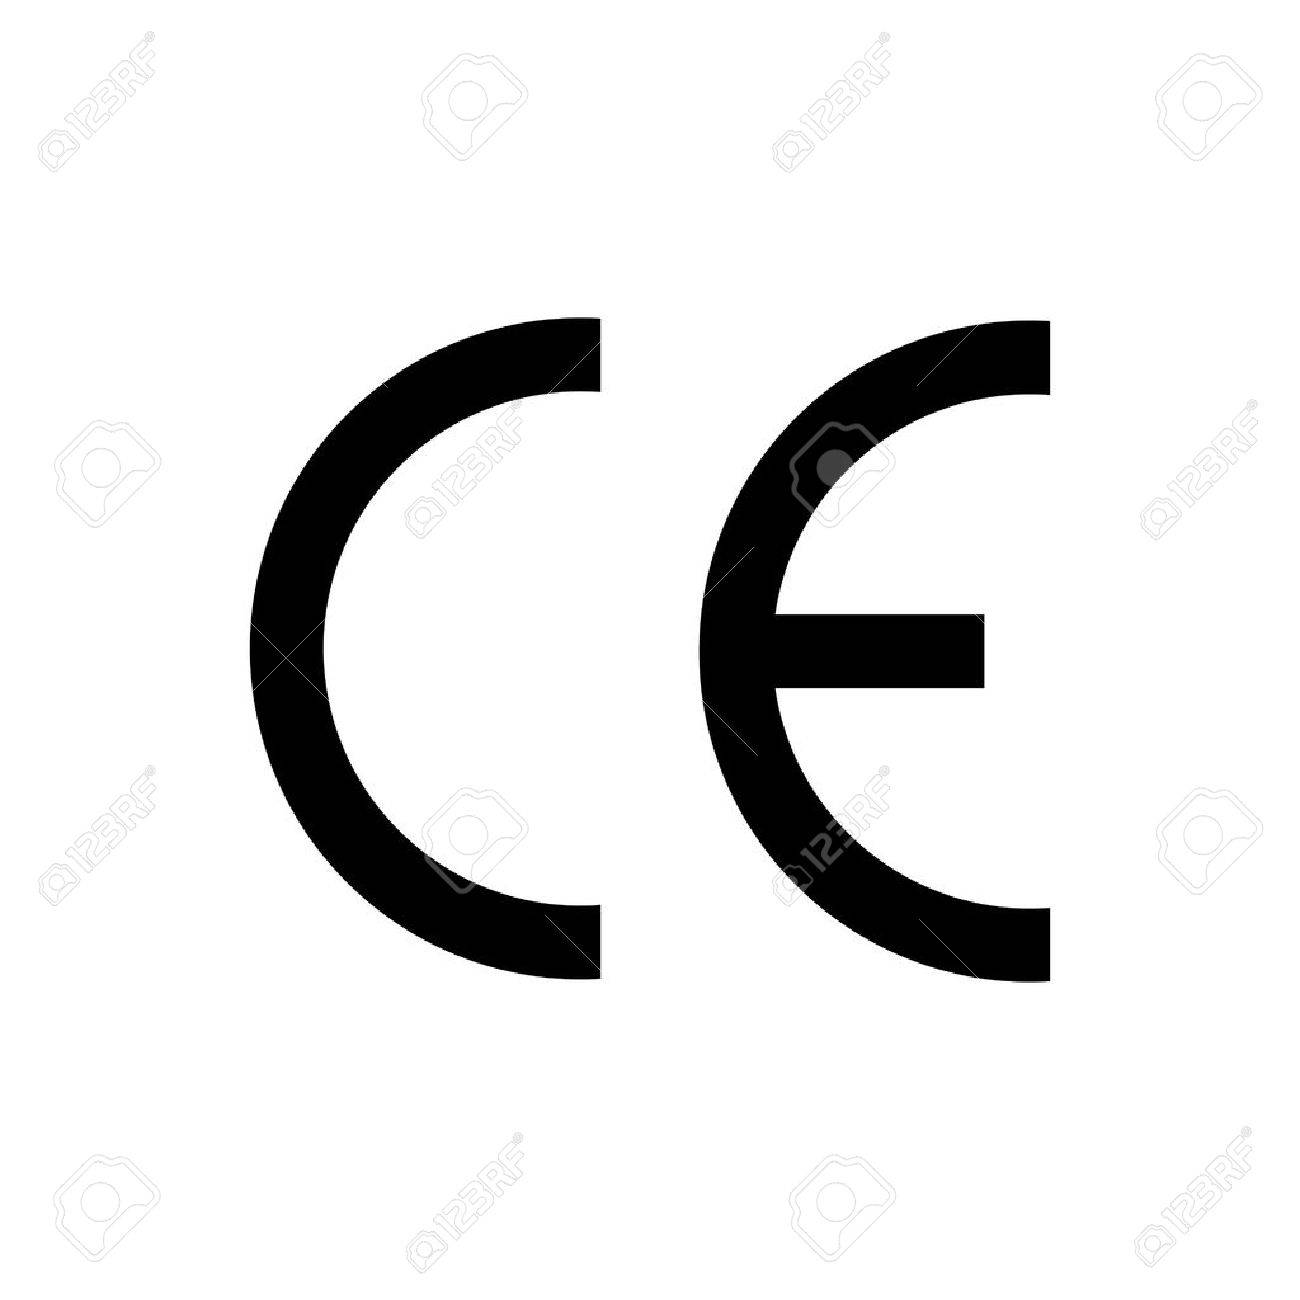 ce mark symbol black colored on white background royalty free rh 123rf com